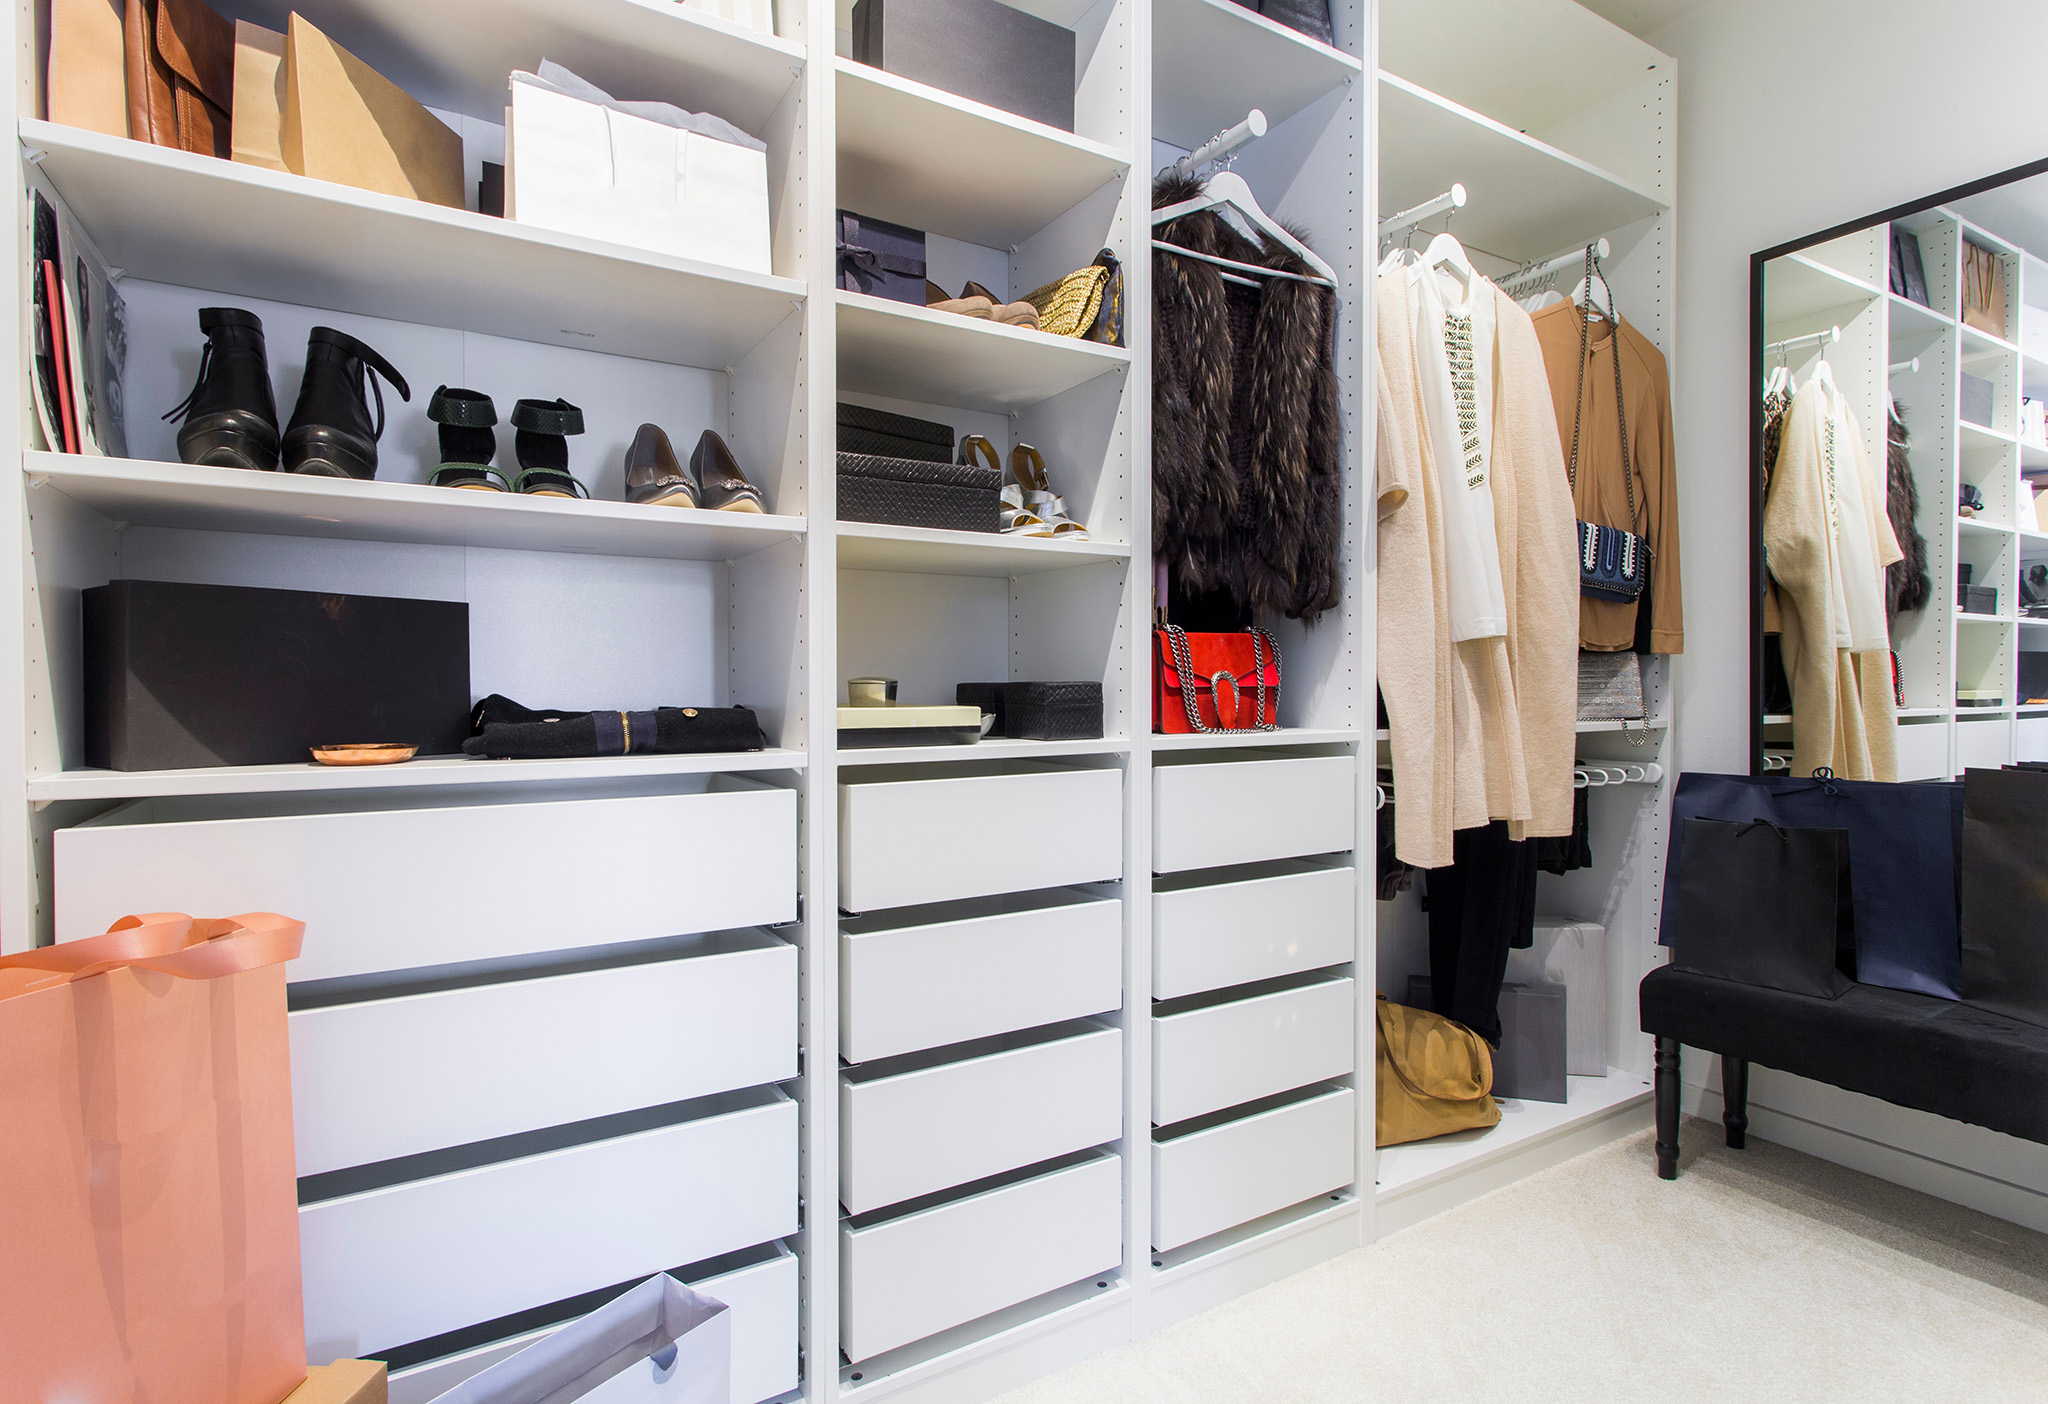 Fitted Wardrobes Ideas - White Wardrobe Design Walk In Wardrobe Design, Chelmsford